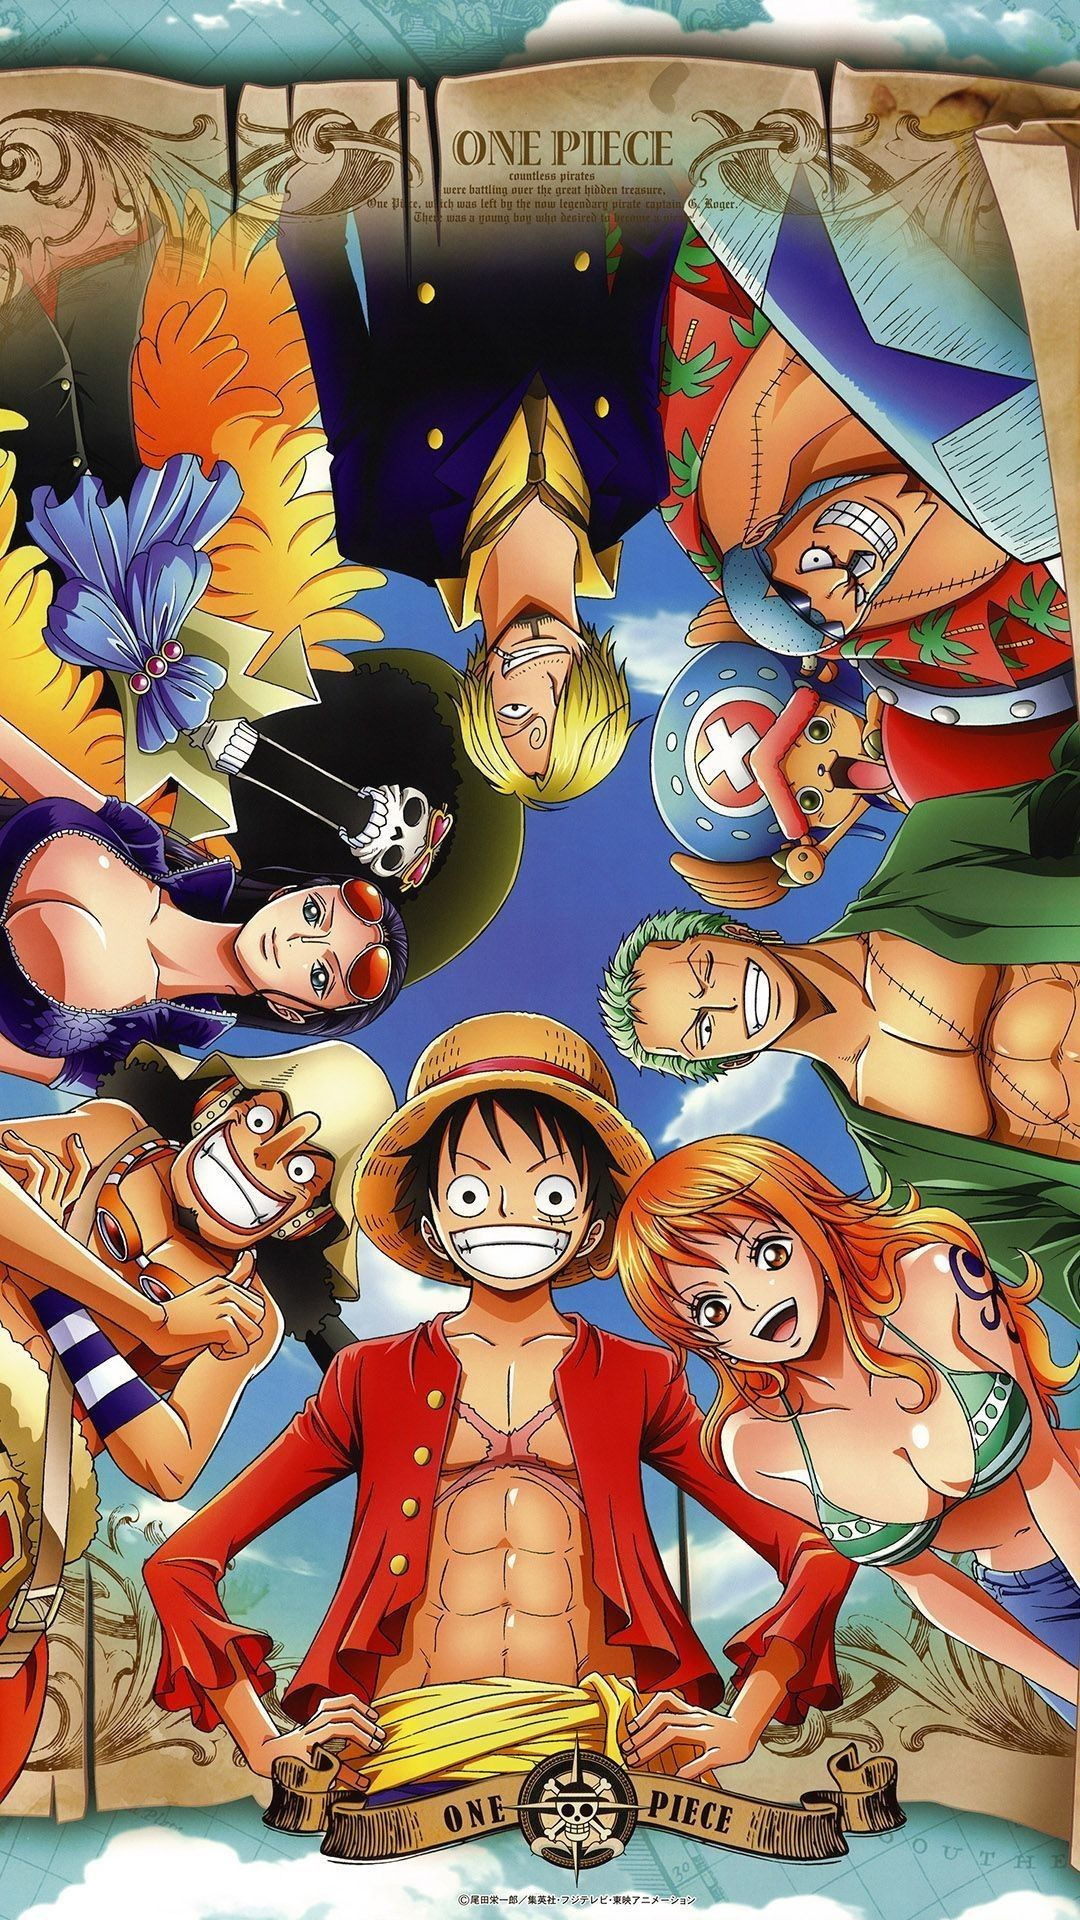 One Piece Chibi Wallpaper 60 Images One Piece Wallpaper Iphone Anime Wallpaper One Piece Anime